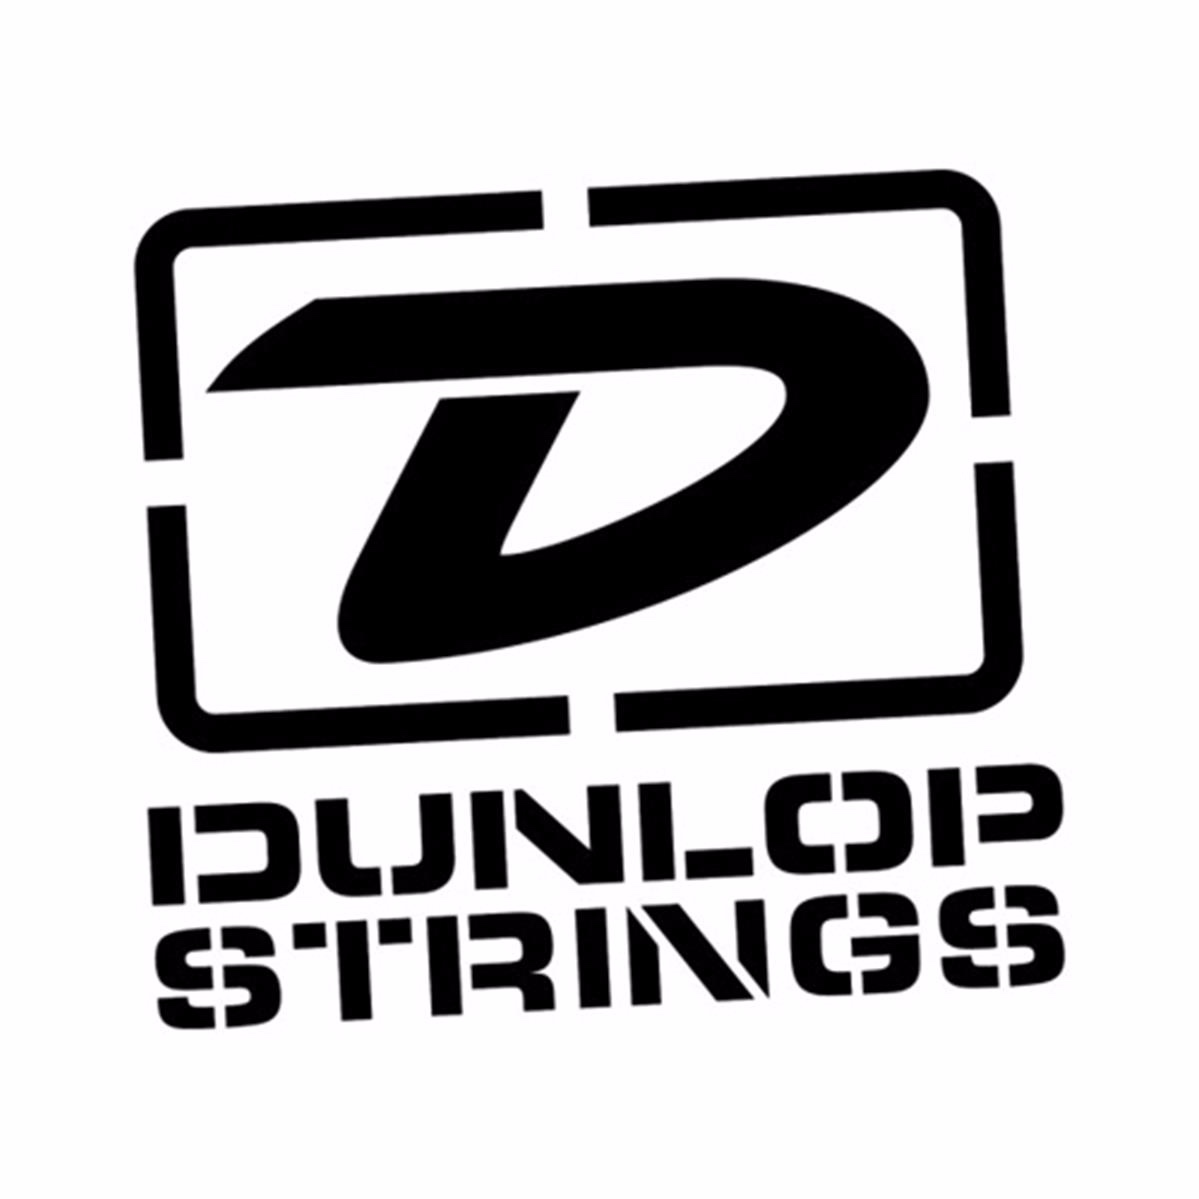 View Dunlop Strings Stock -